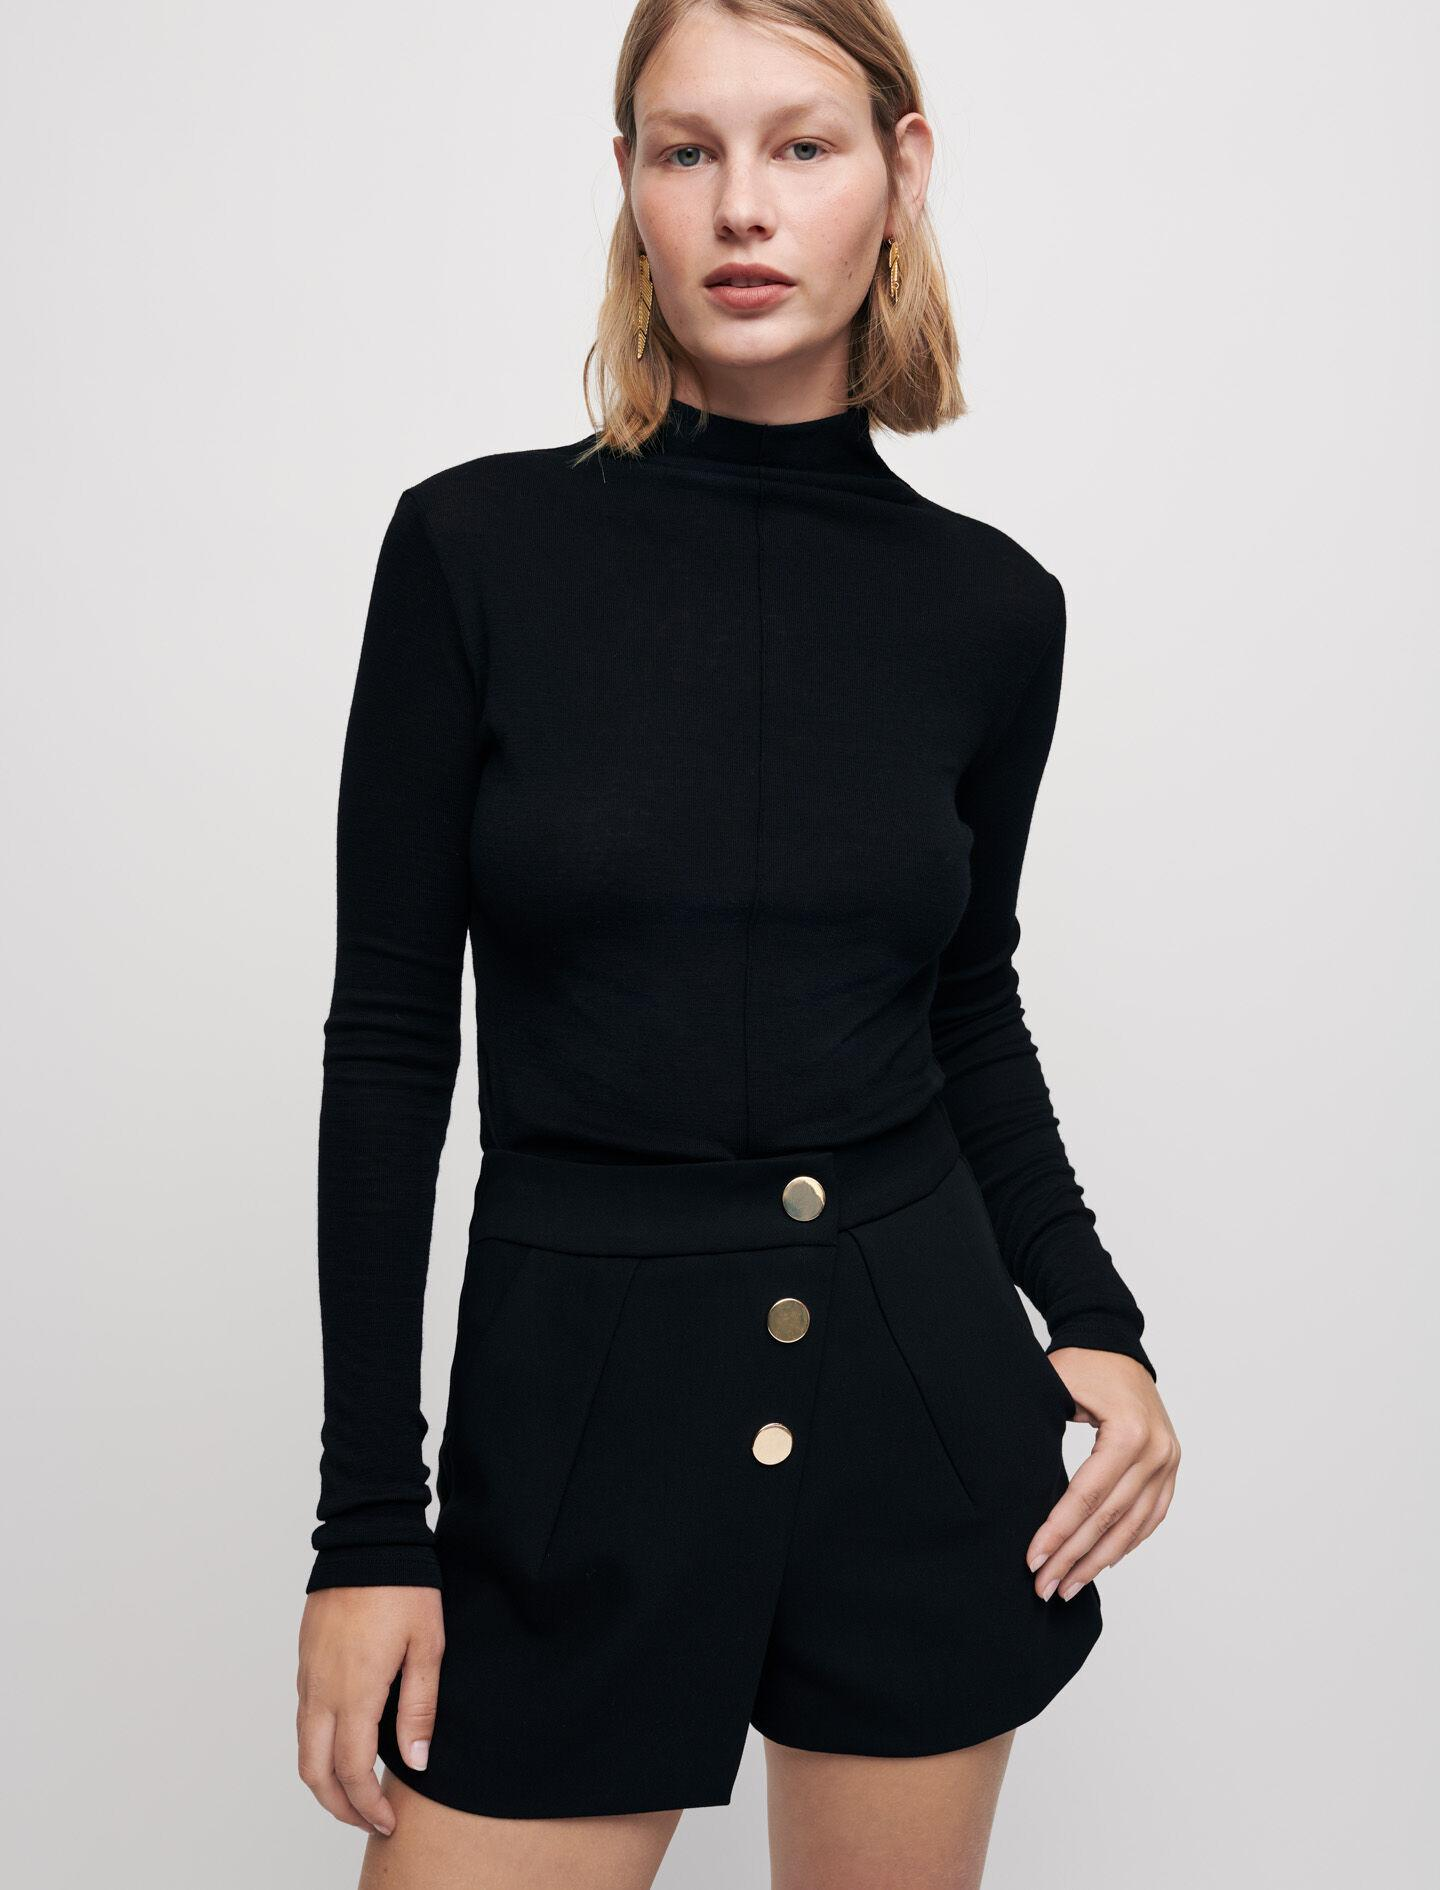 LONG-SLEEVED SWEATER